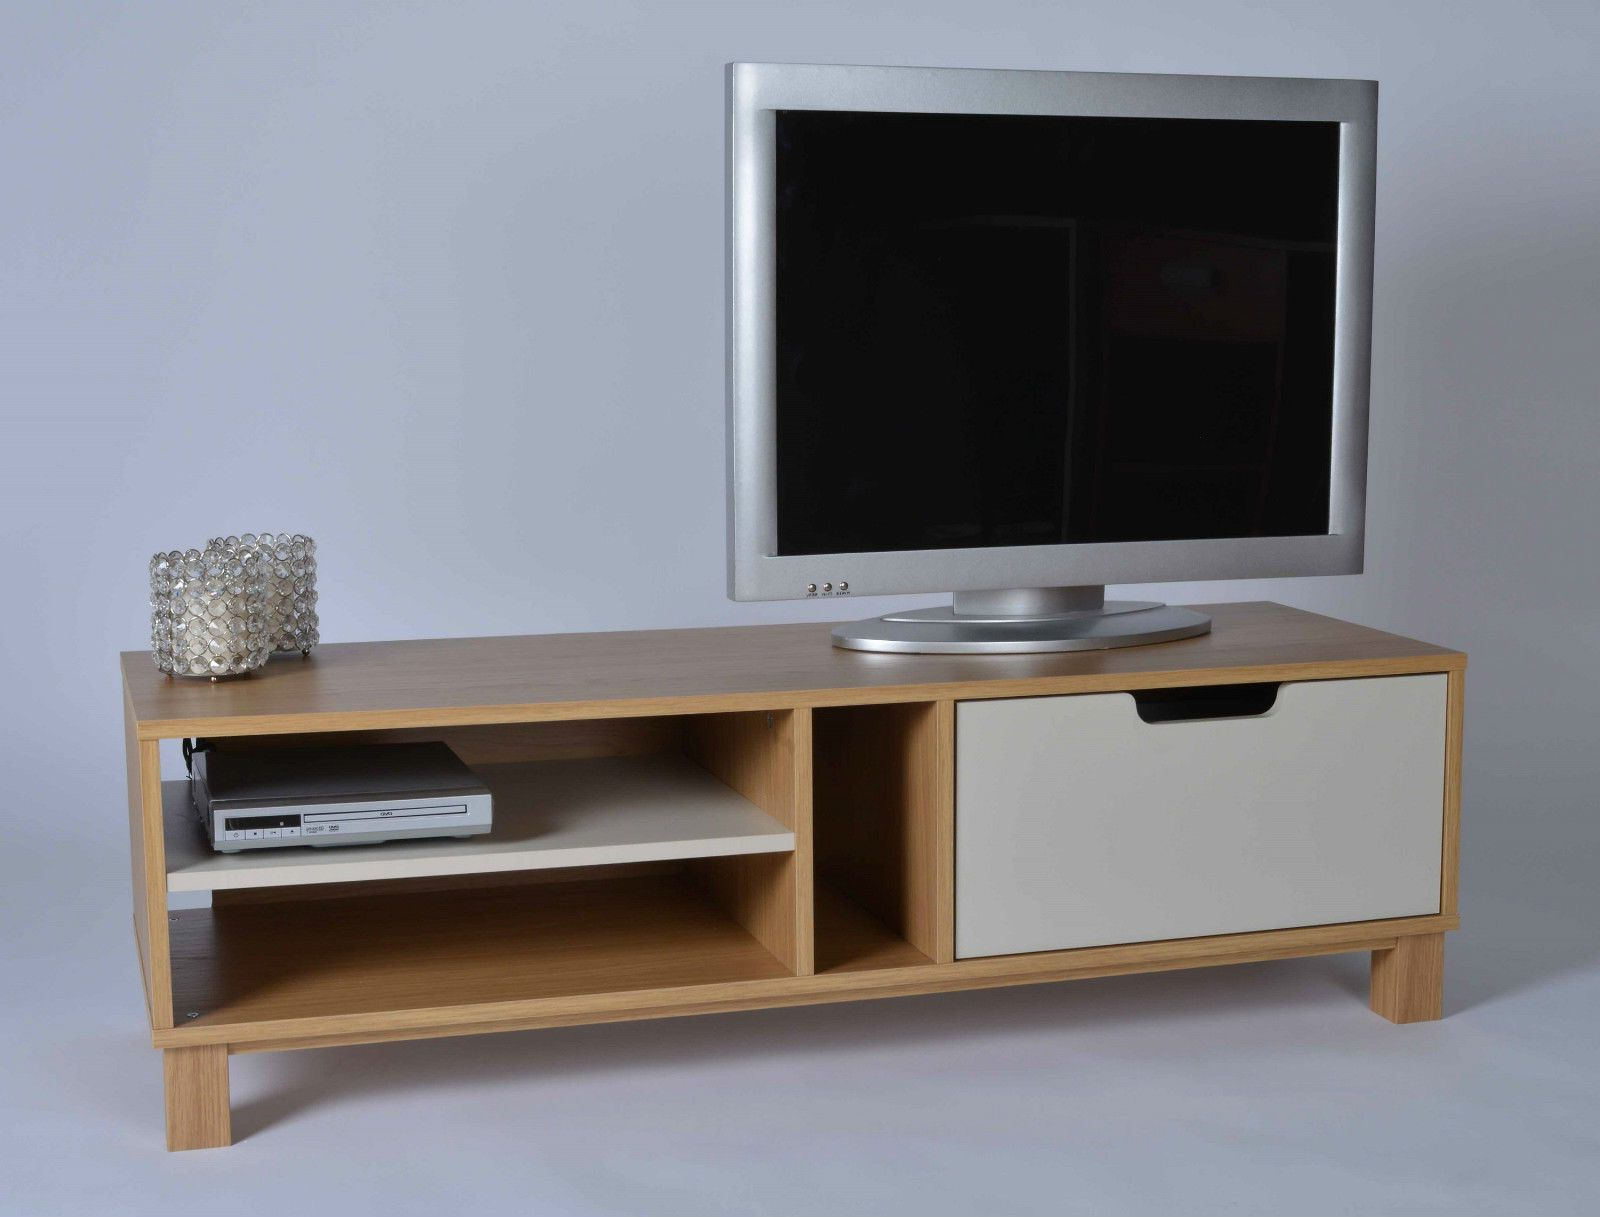 Retro Tv Stand Wooden White Drawer Shelves Storage Unit Intended For Owen Retro Tv Unit Stands (View 1 of 20)